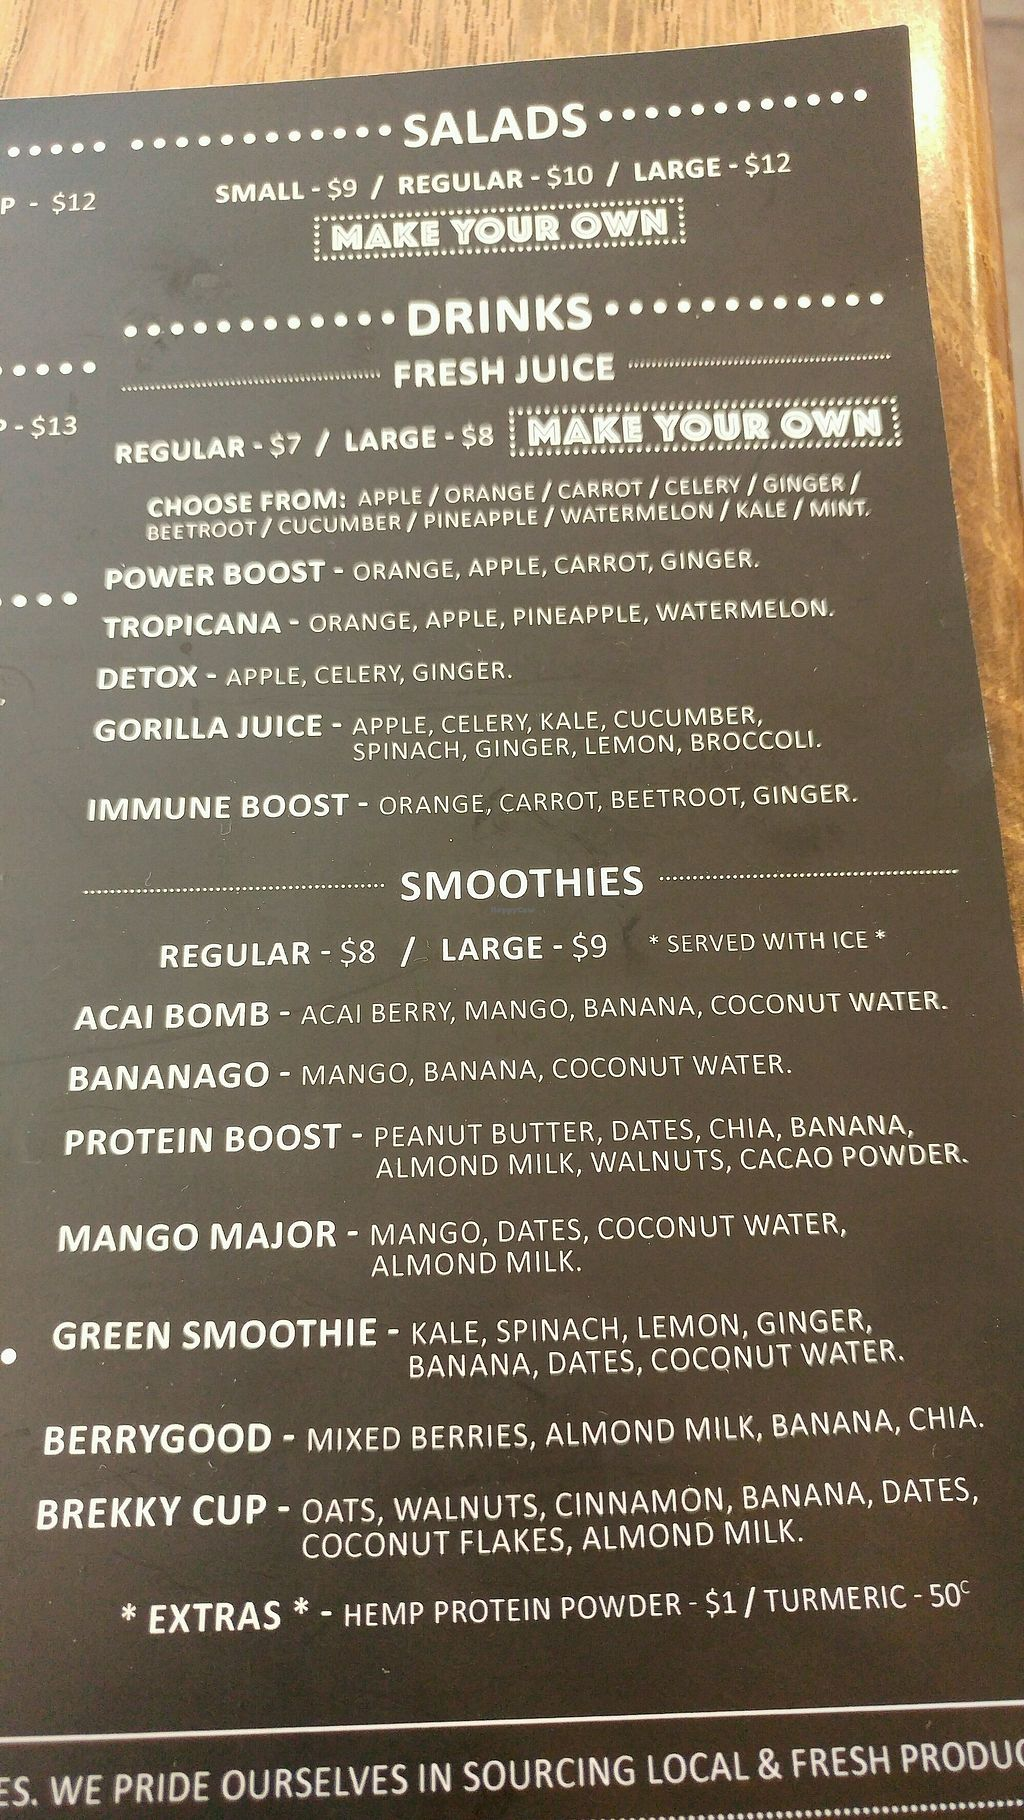 """Photo of Herbivore Eatery  by <a href=""""/members/profile/verbosity"""">verbosity</a> <br/>jan 2018 menu 3 <br/> January 22, 2018  - <a href='/contact/abuse/image/84024/349595'>Report</a>"""